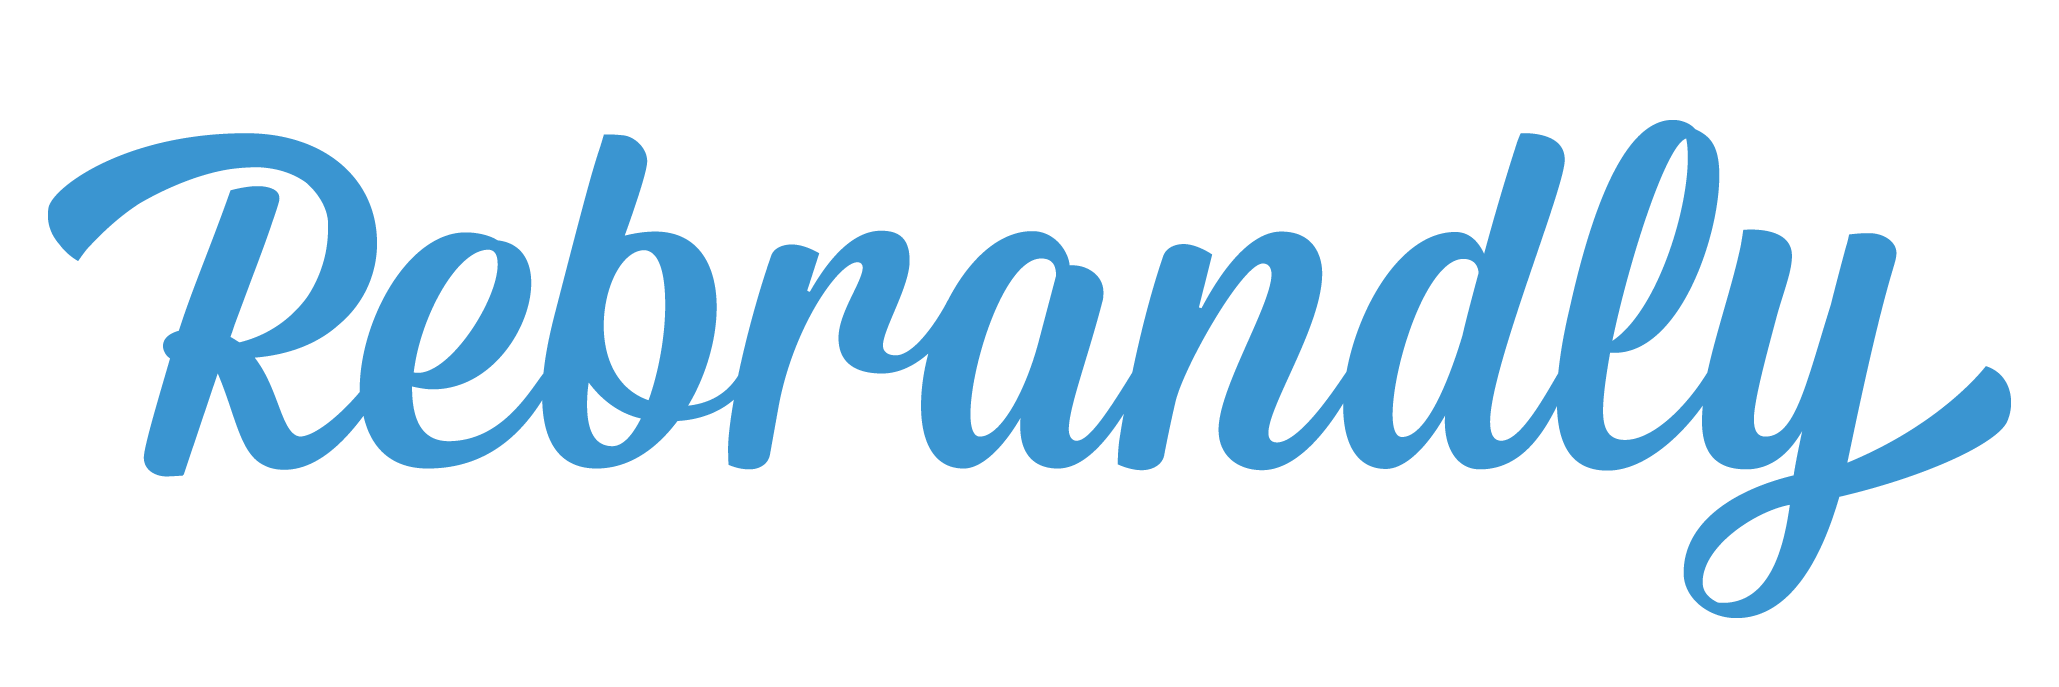 Rebrandly-logo-blue-2